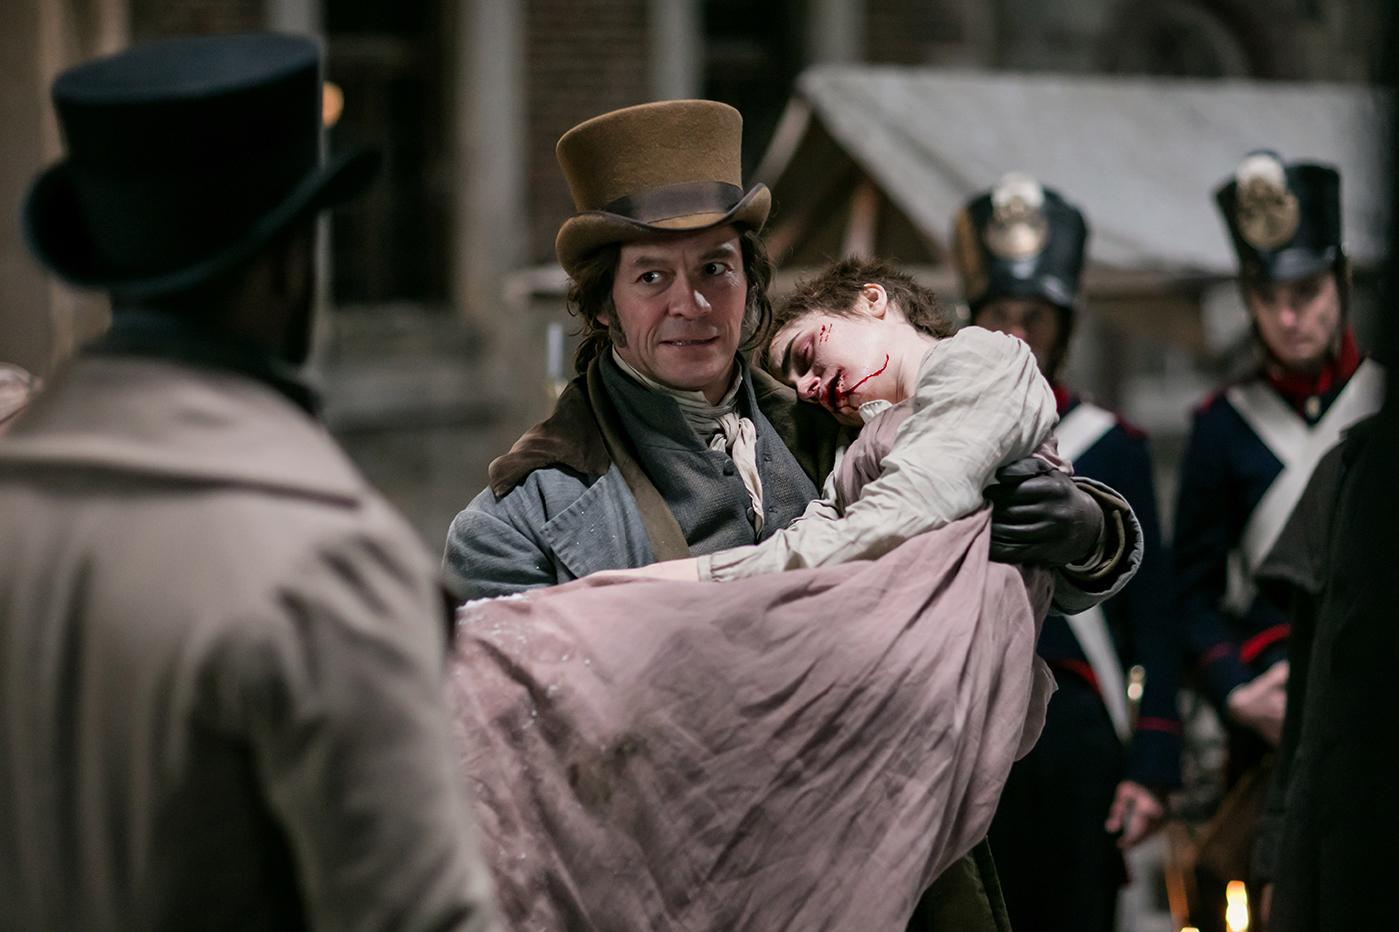 Javert (David Oyelowo), Jean Valjean (Dominic West), Fantine (Lily Collins) in Les Miserables. Photo: Robert Viglasky / Lookout Point